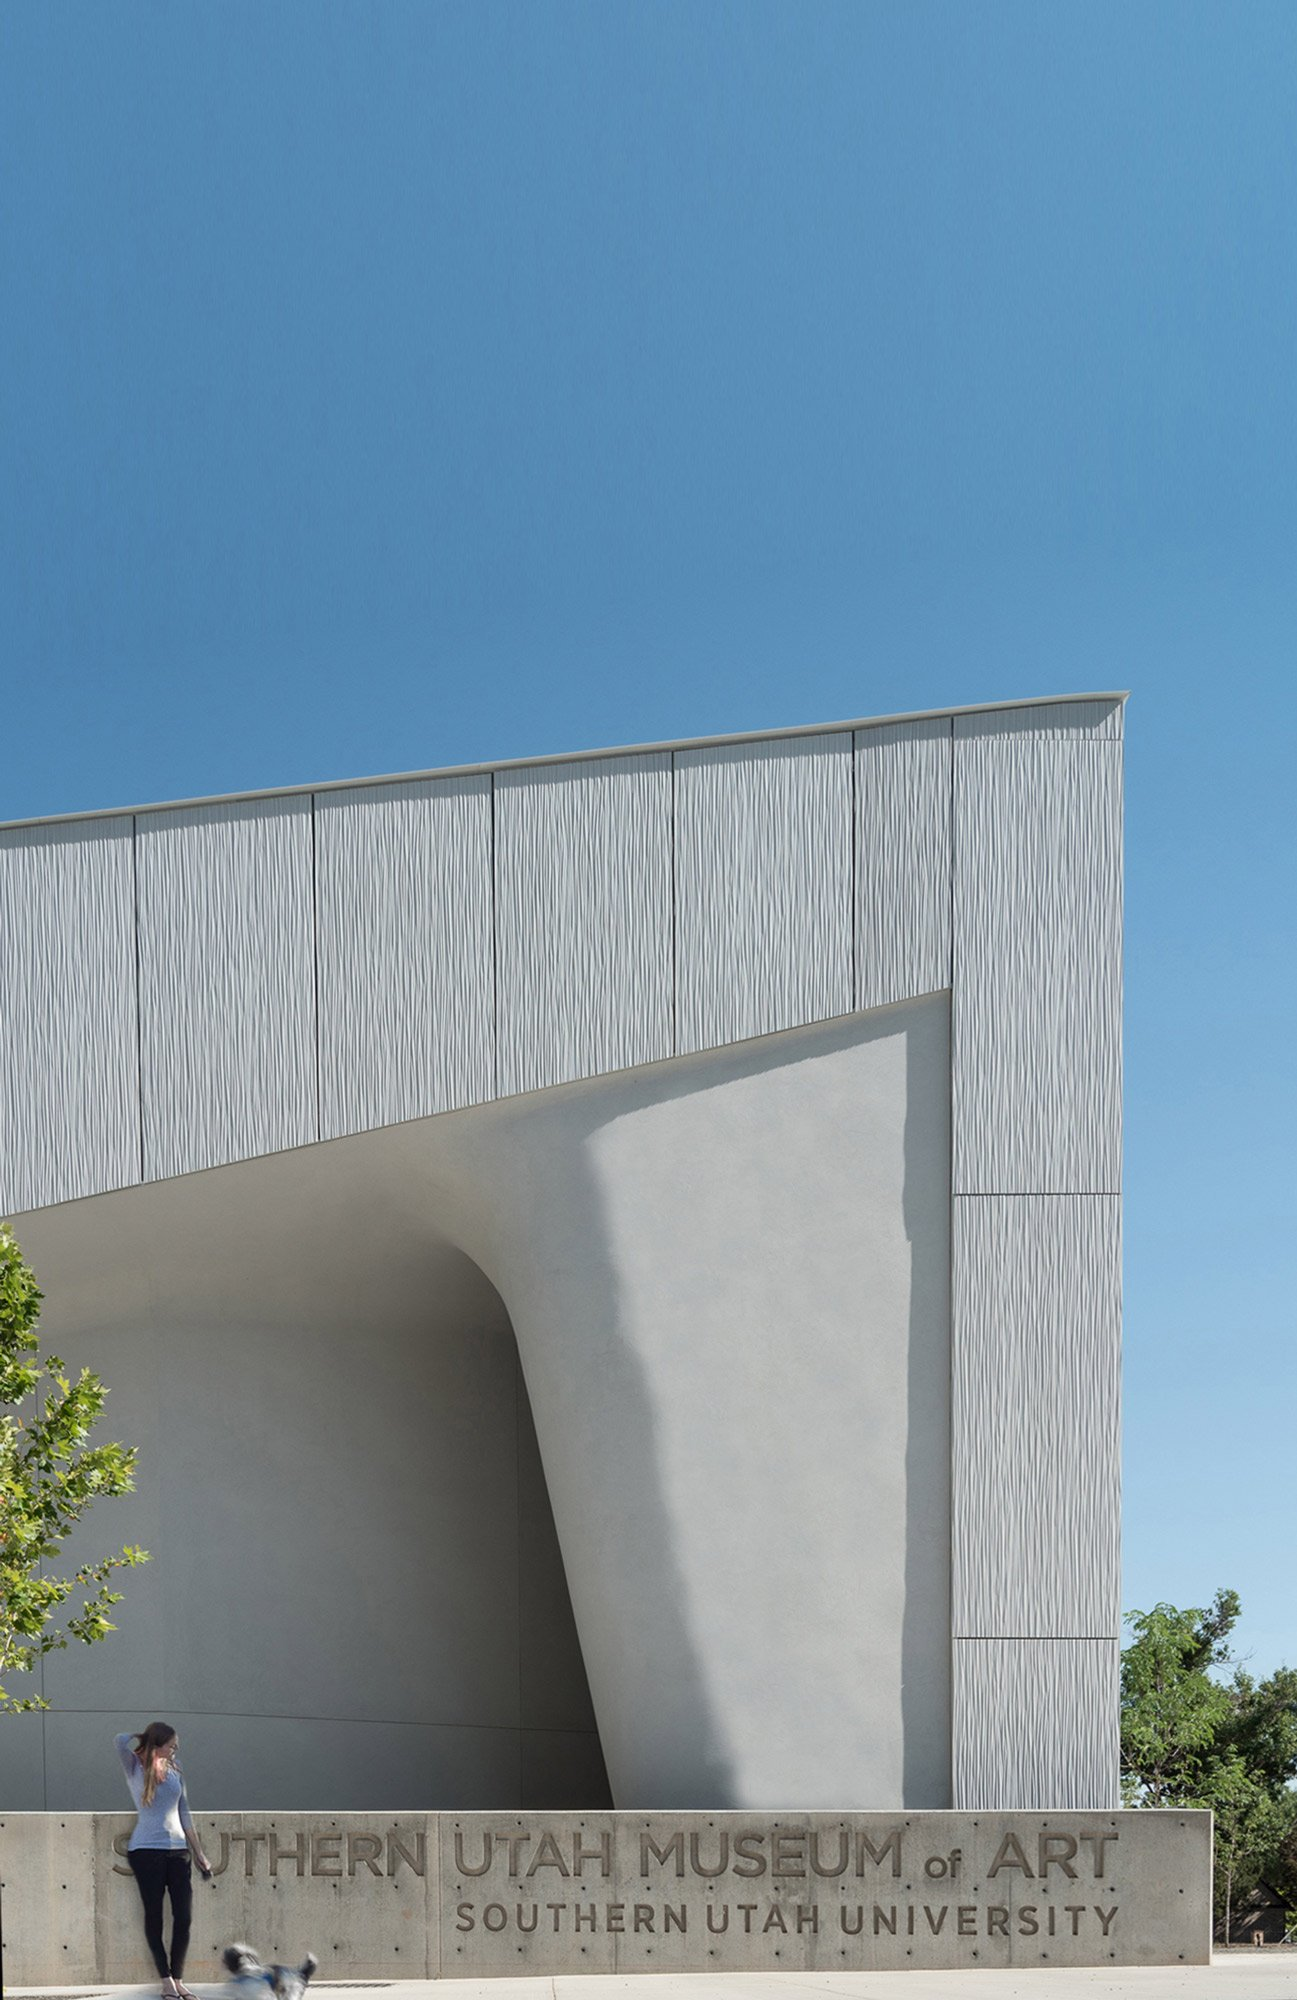 Southern Utah Museum of Art (SUMA) © Brooks+Scarpa